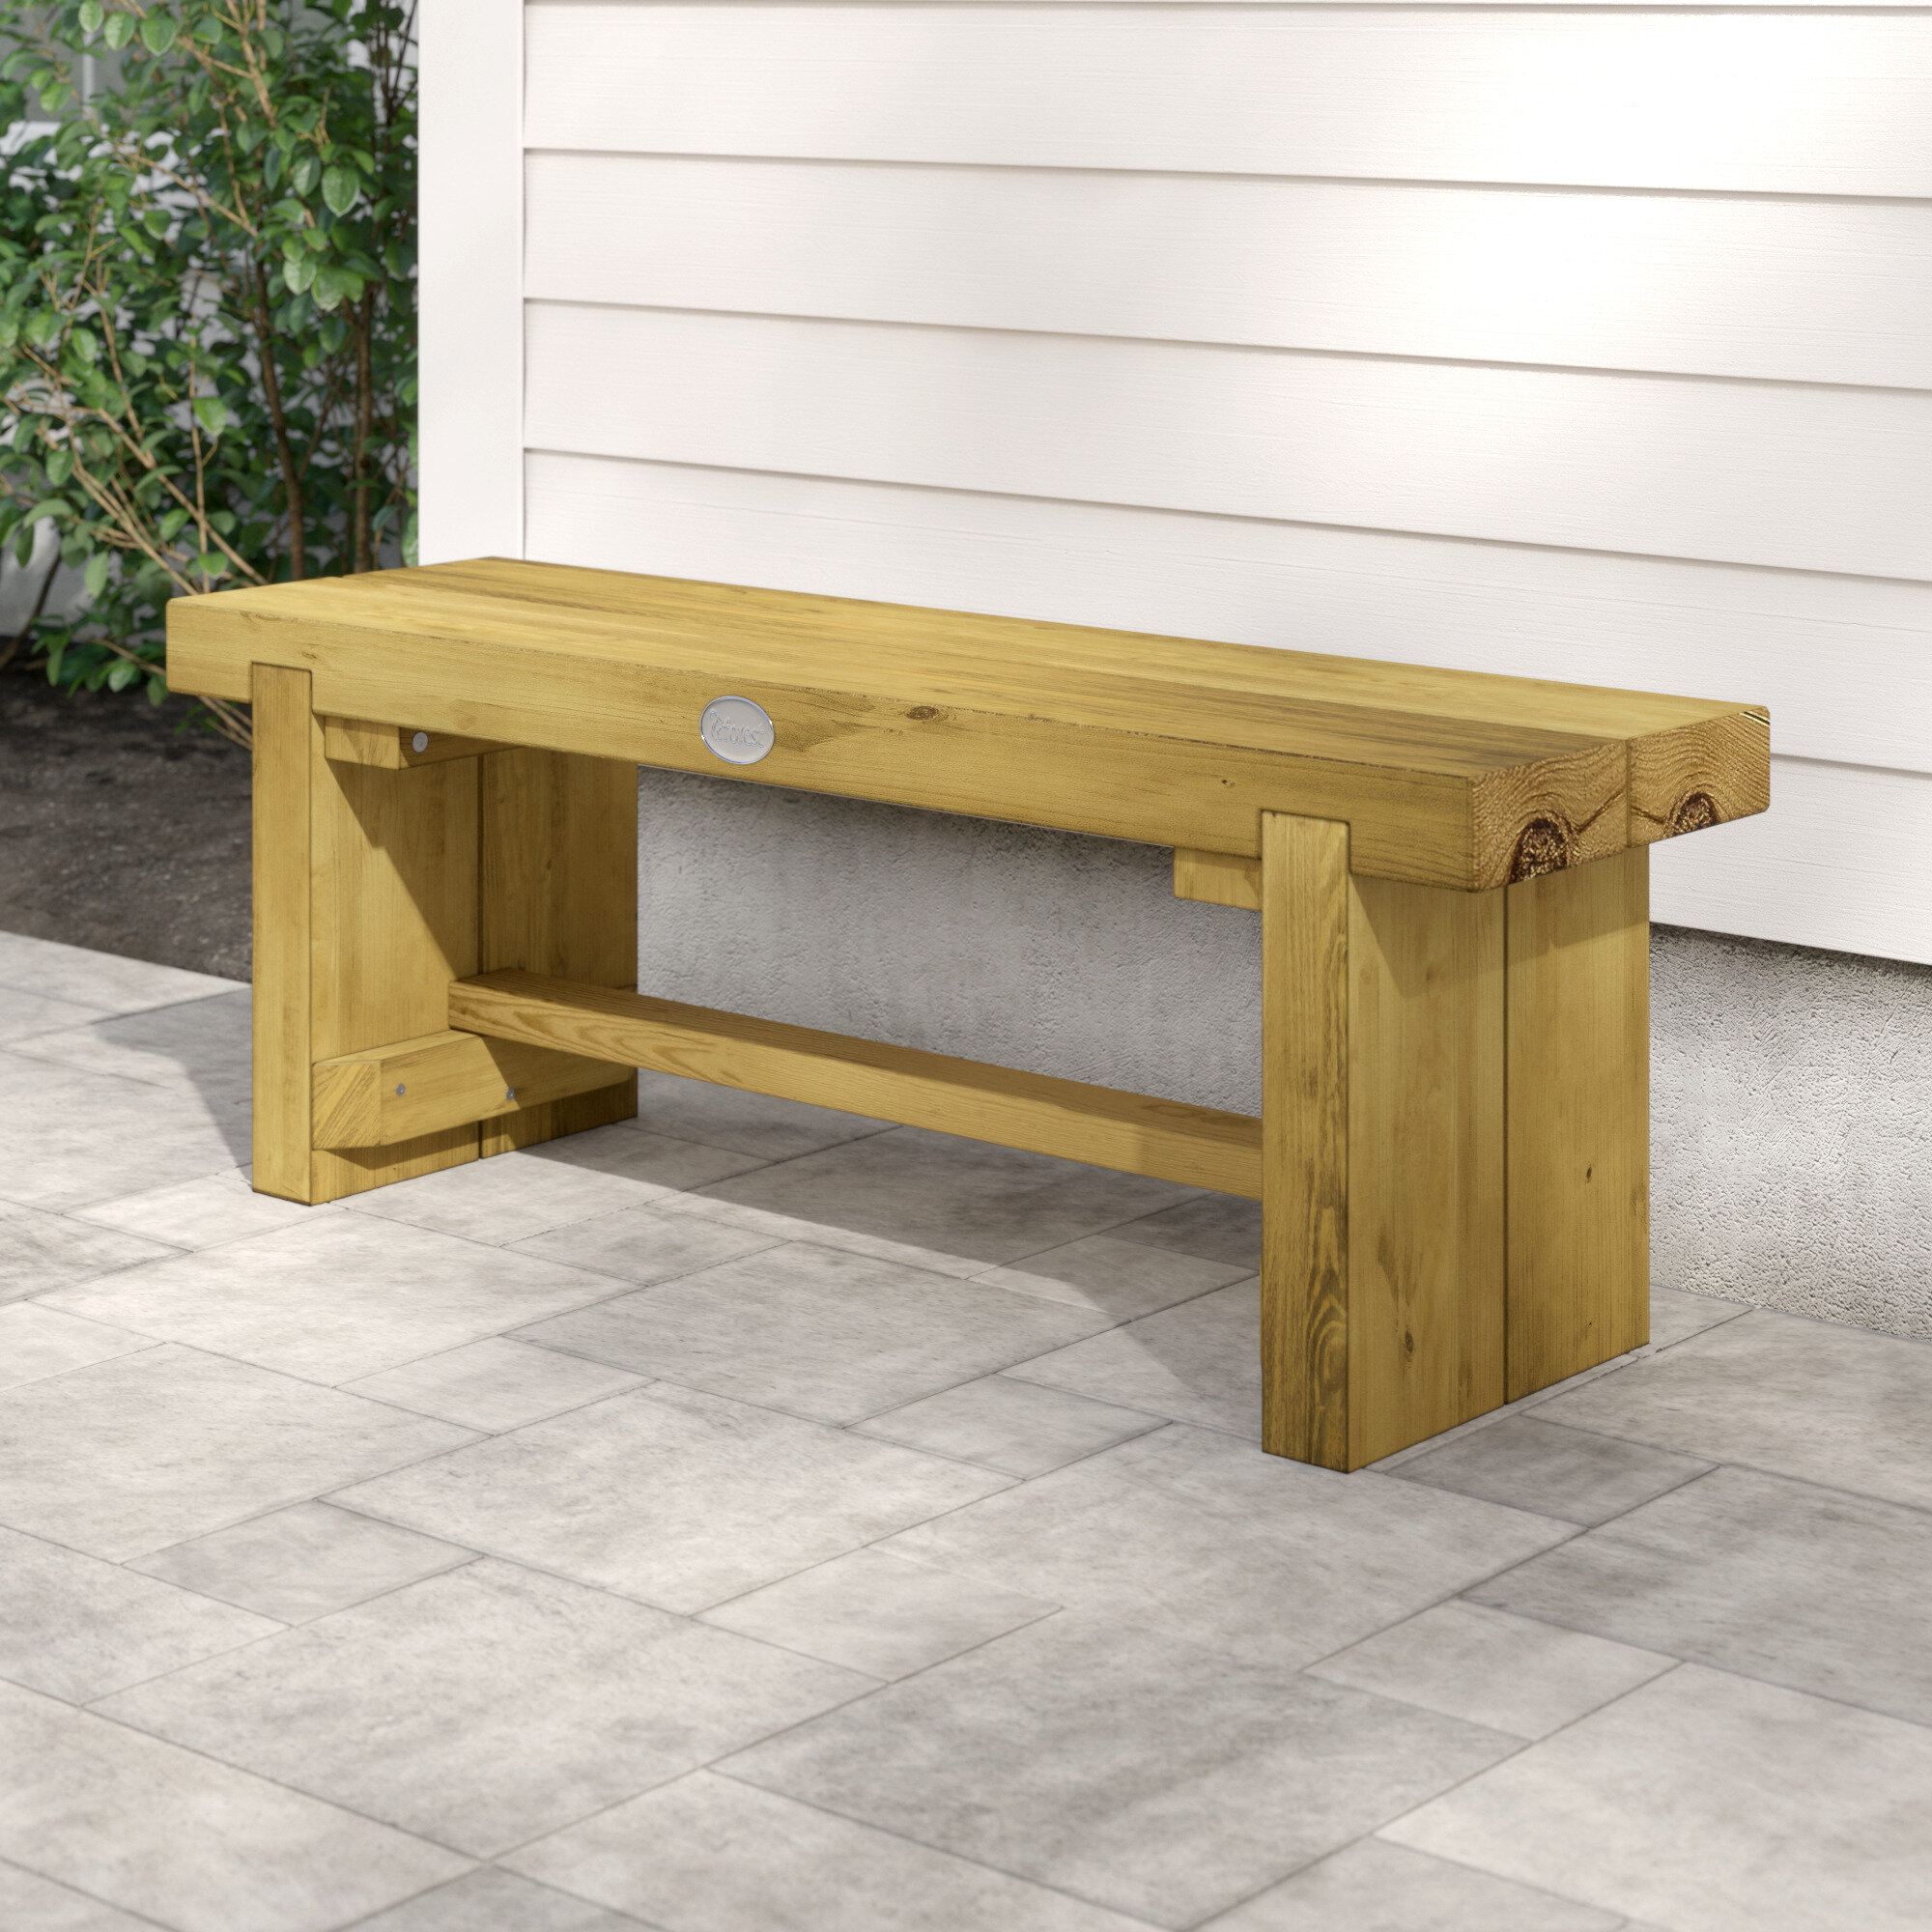 Bel Etage Double Sleeper Wooden Bench Reviews Wayfair Co Uk